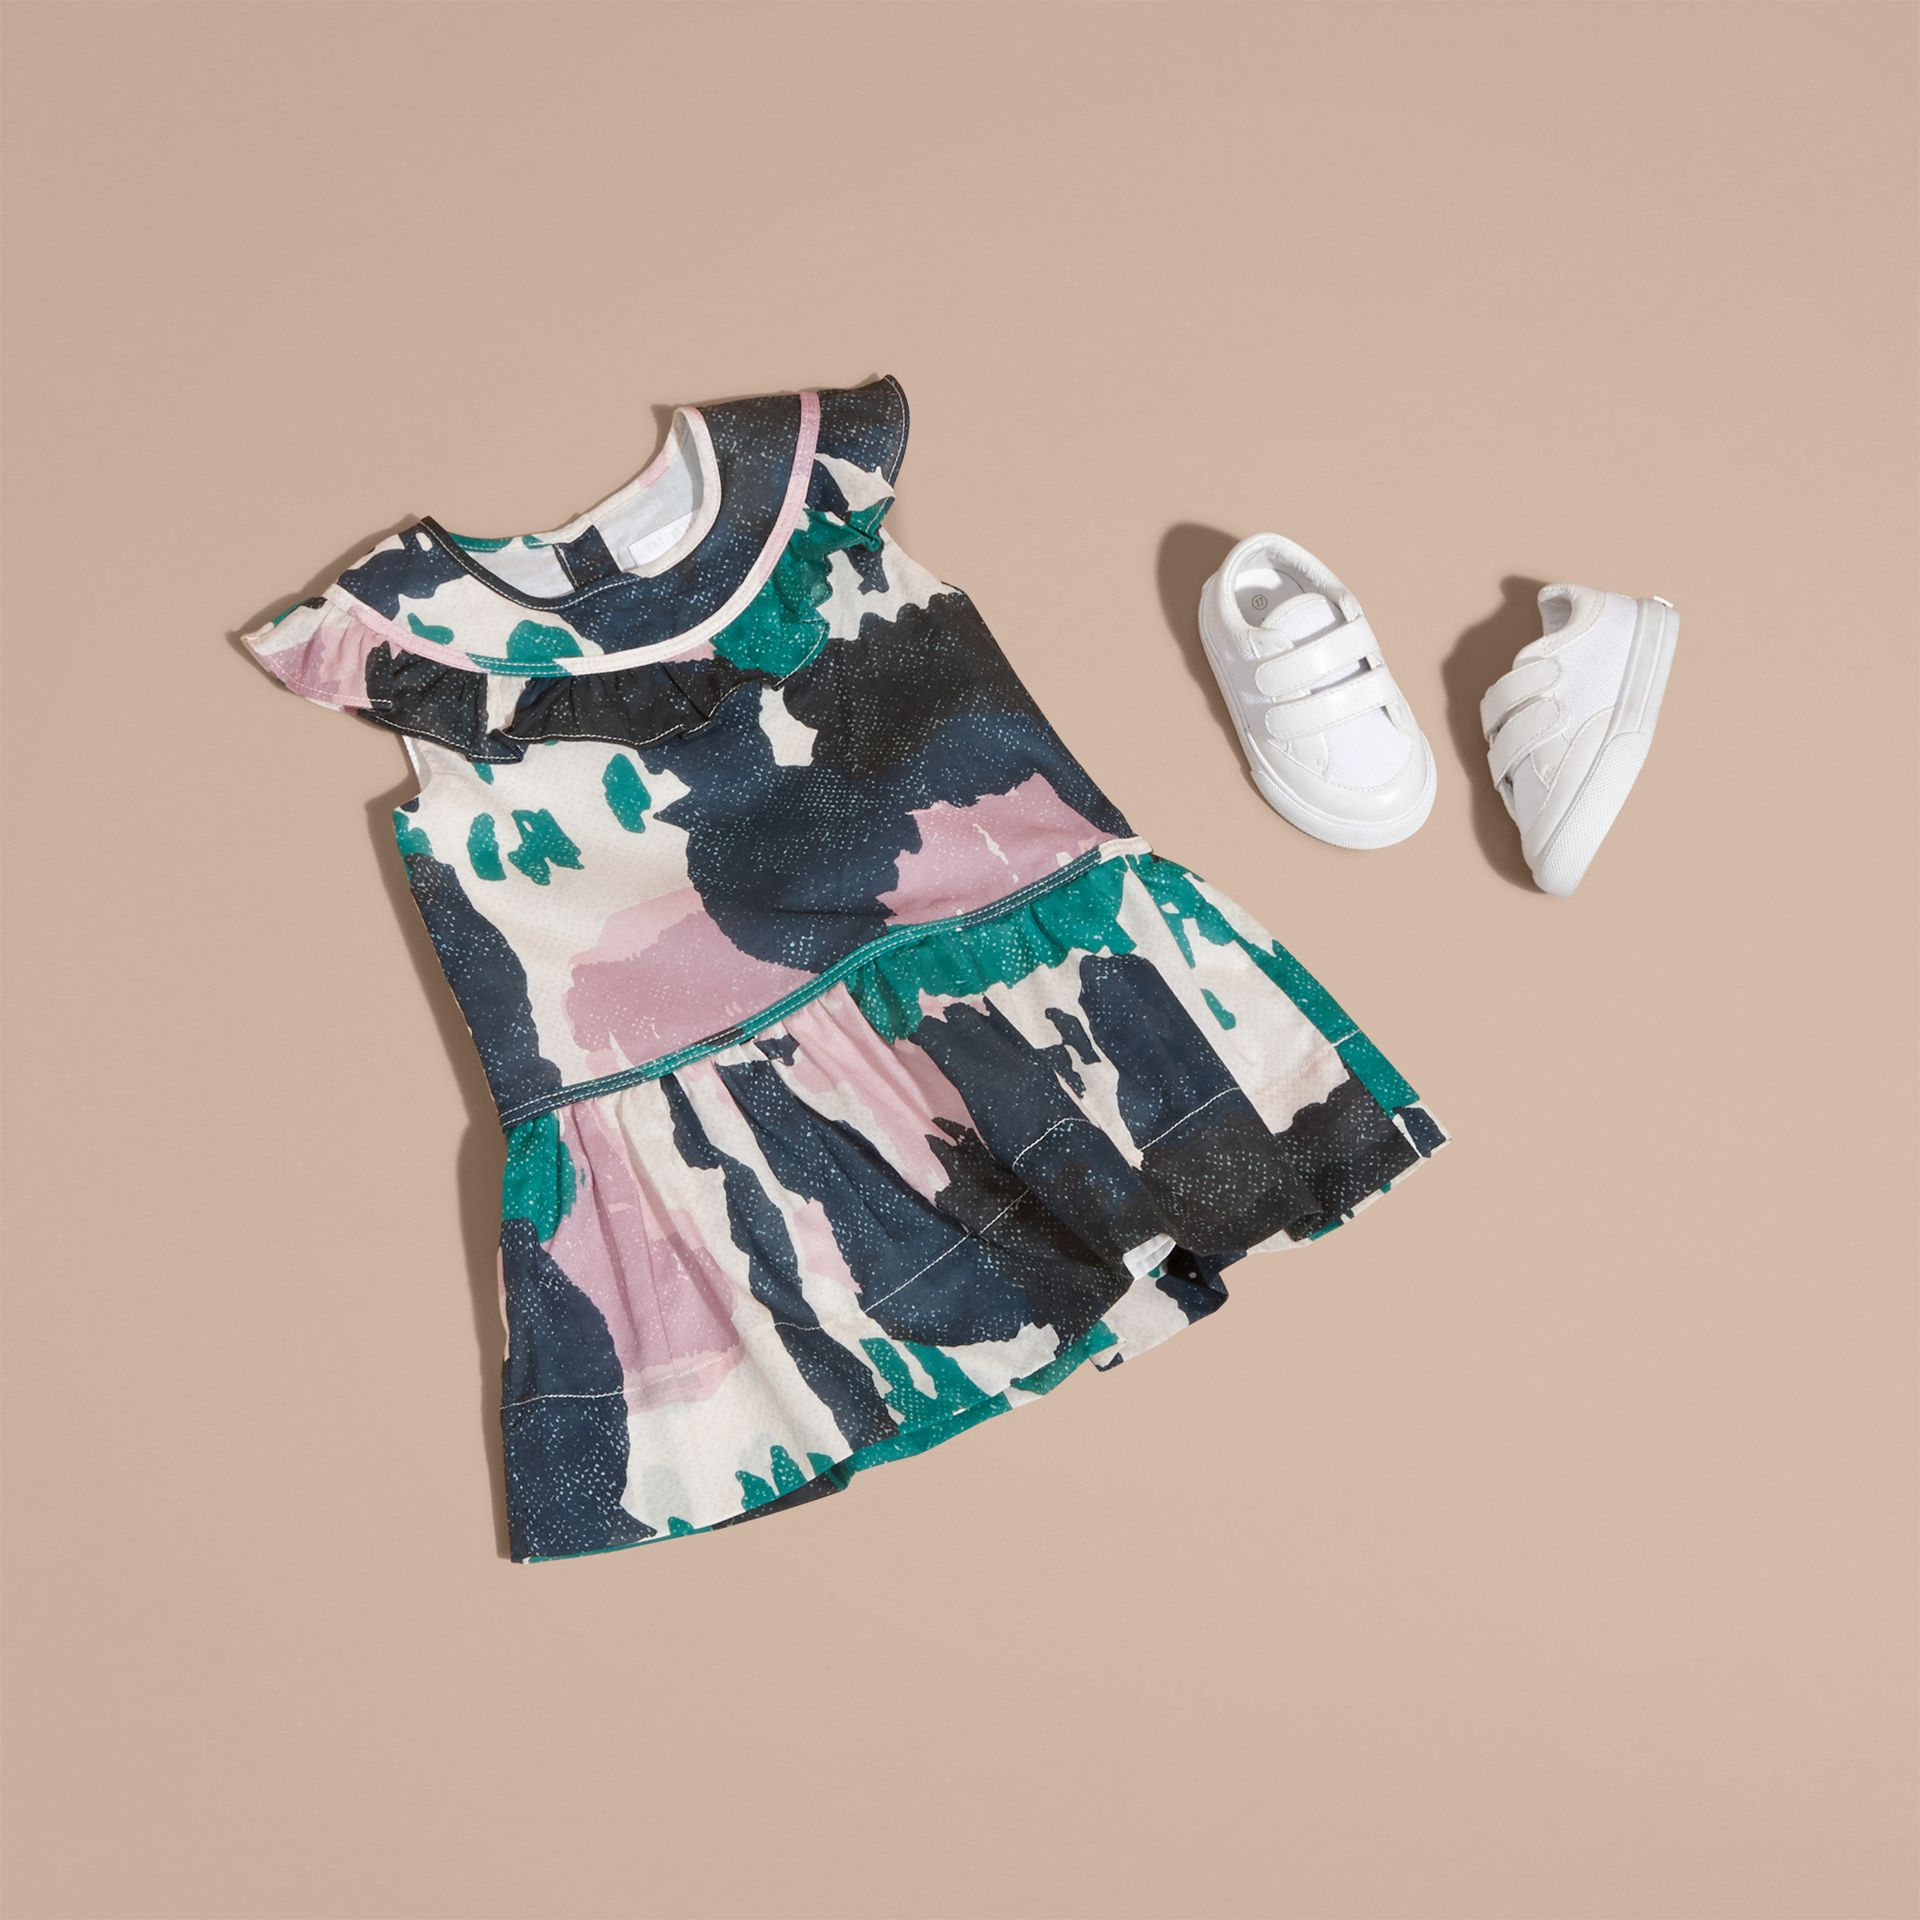 Teal green Painterly Print Ruffle Trim Cotton Dress - gallery image 5